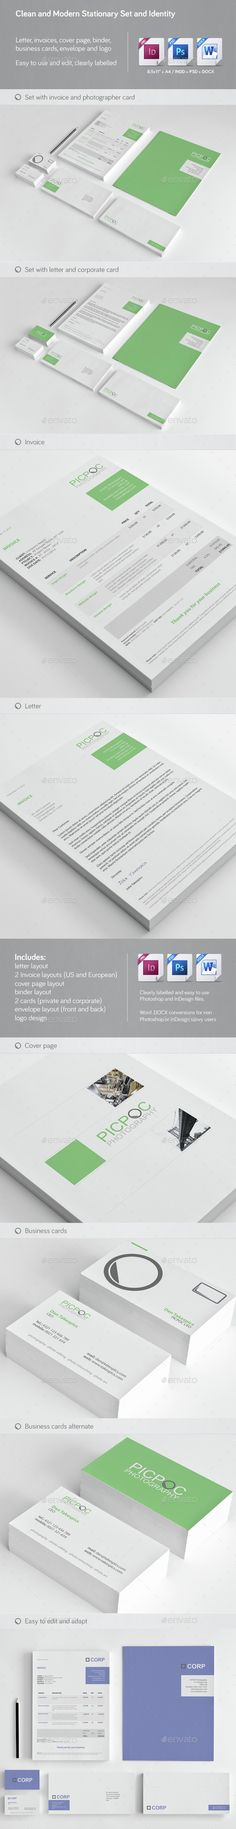 Buy Clean & Modern Stationery, Invoice and Identity by chrisatlemon on GraphicRiver. File description: Stationery set featuring invoices, letter and cover page templates. Also included are business card. Stationery Printing, Stationery Templates, Stationery Design, Print Templates, Invoice Design Template, Invoice Format, Design Templates, Corporate Stationary, Corporate Identity